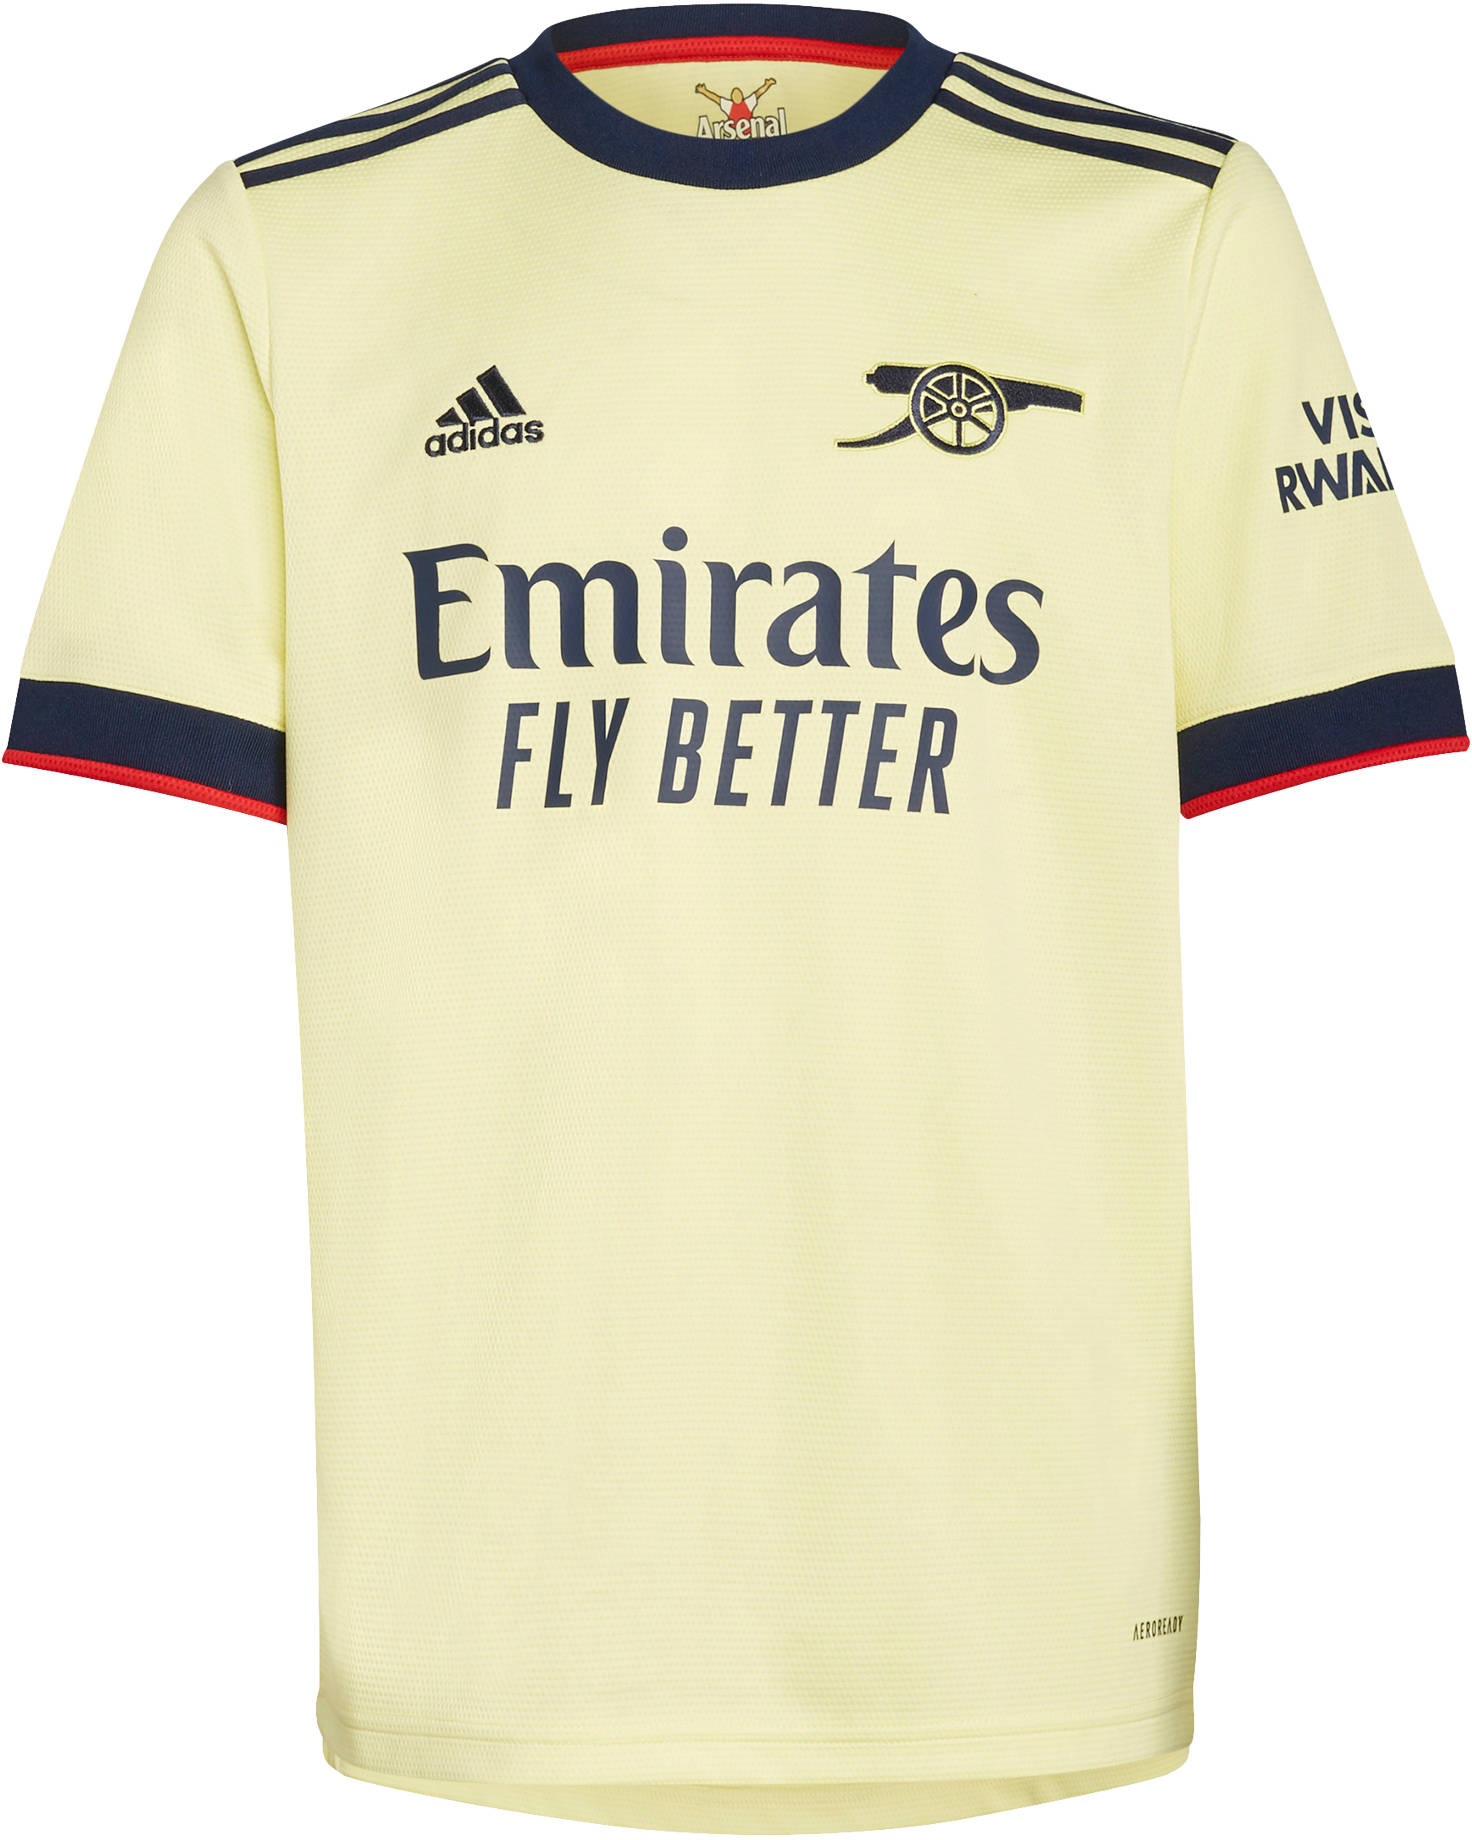 Dres adidas Arsenal FC Away Jersey Youth 2021/22